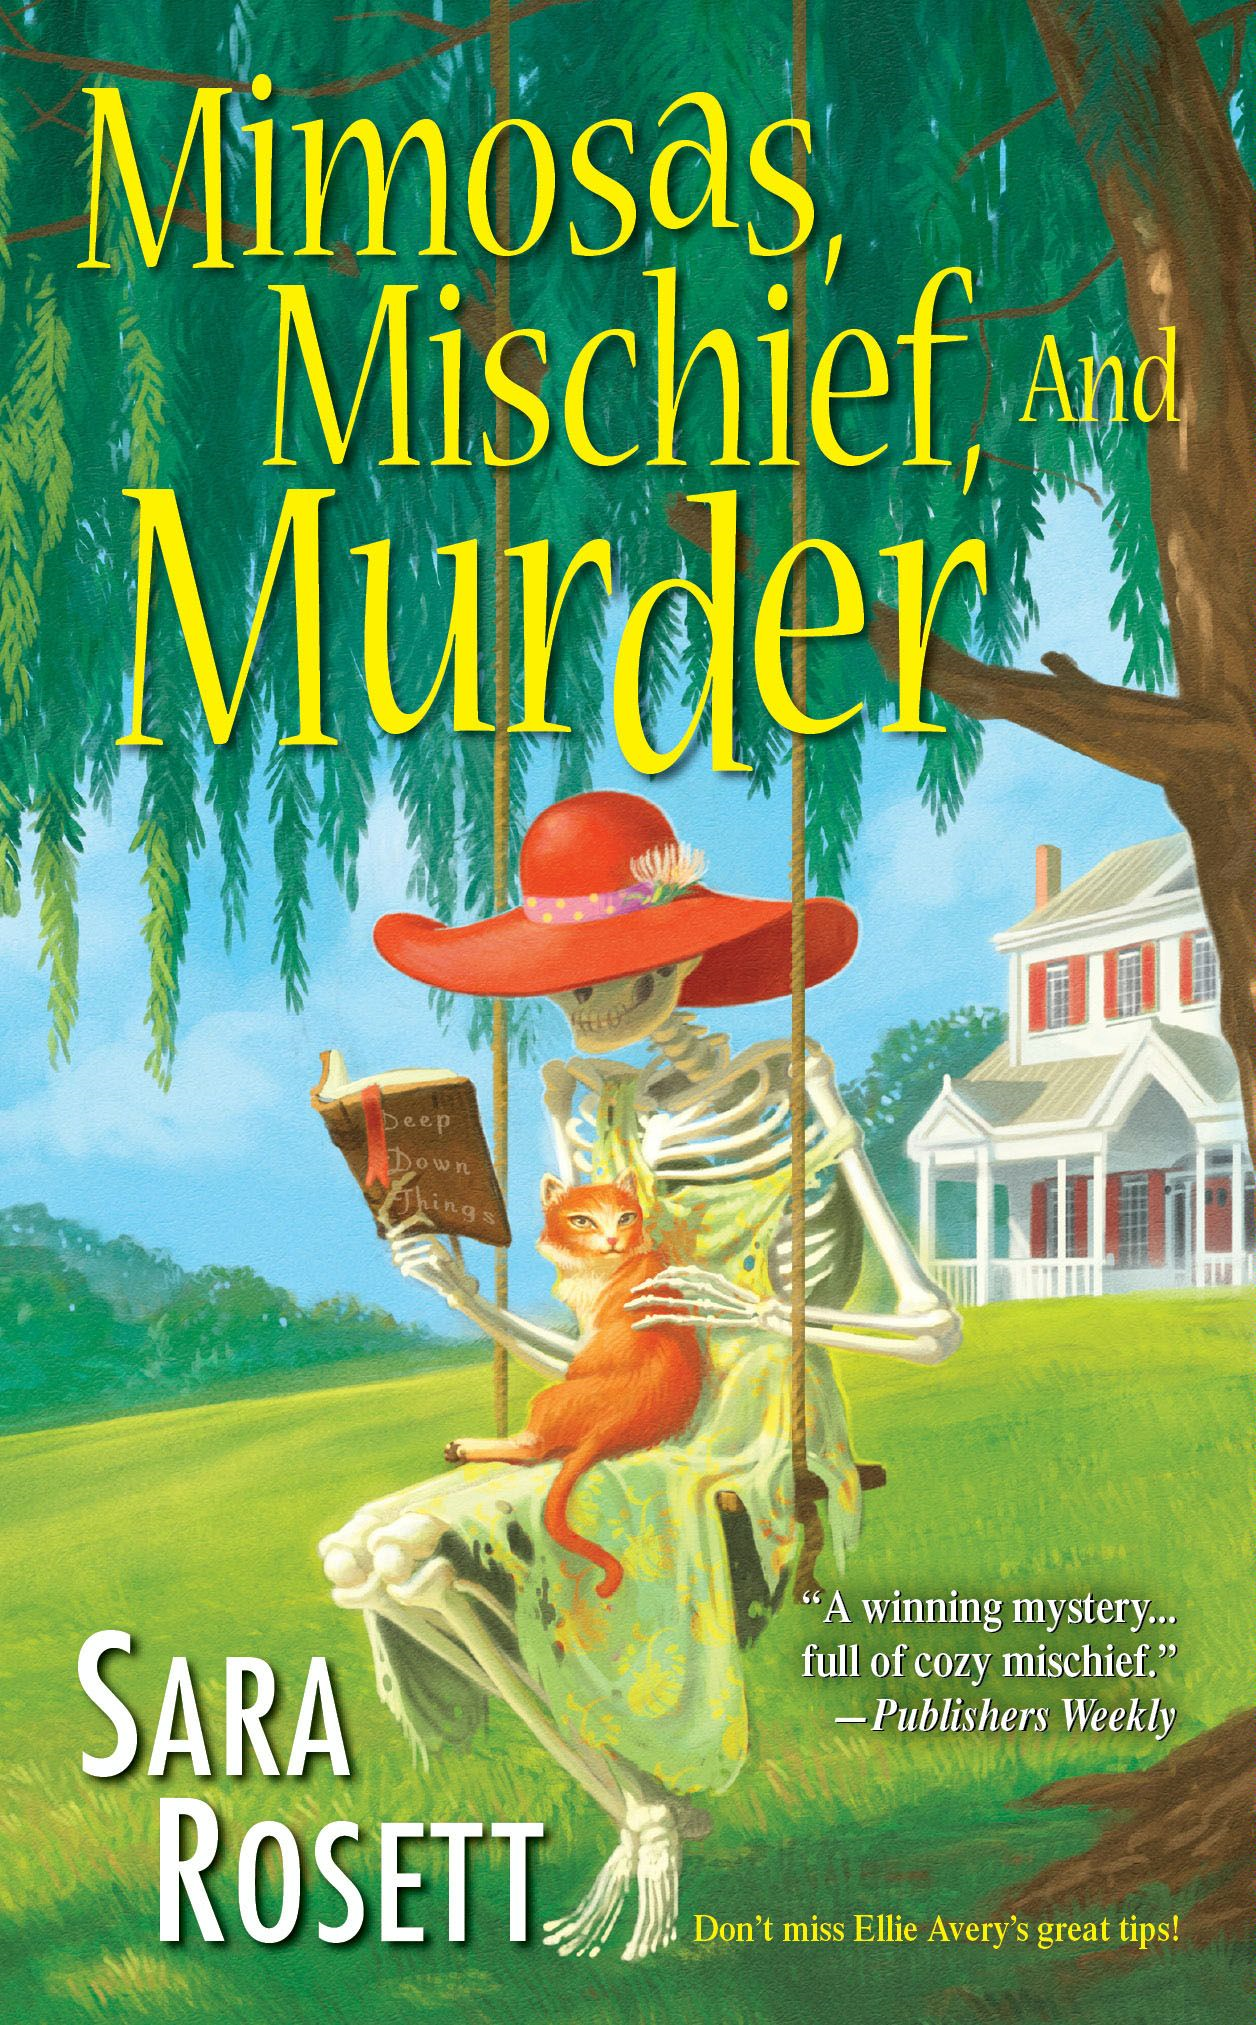 Mimosas, Mischief, and Murder By: Sara Rosett